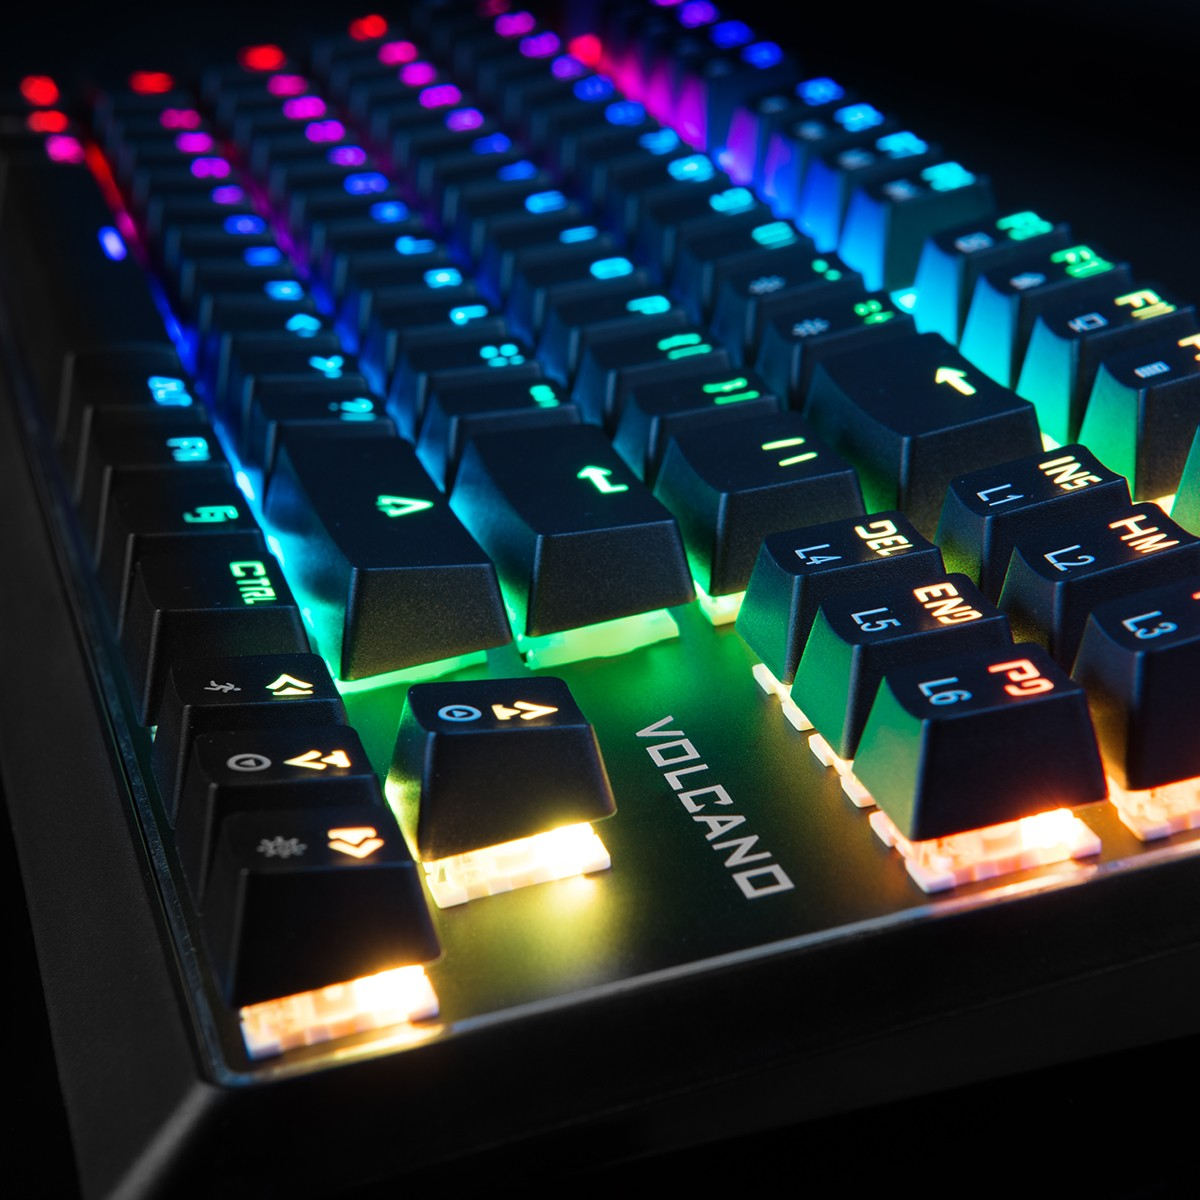 MODECOM VOLCANO LANPARTY RGB GAMING KEYBOARD BROWN US